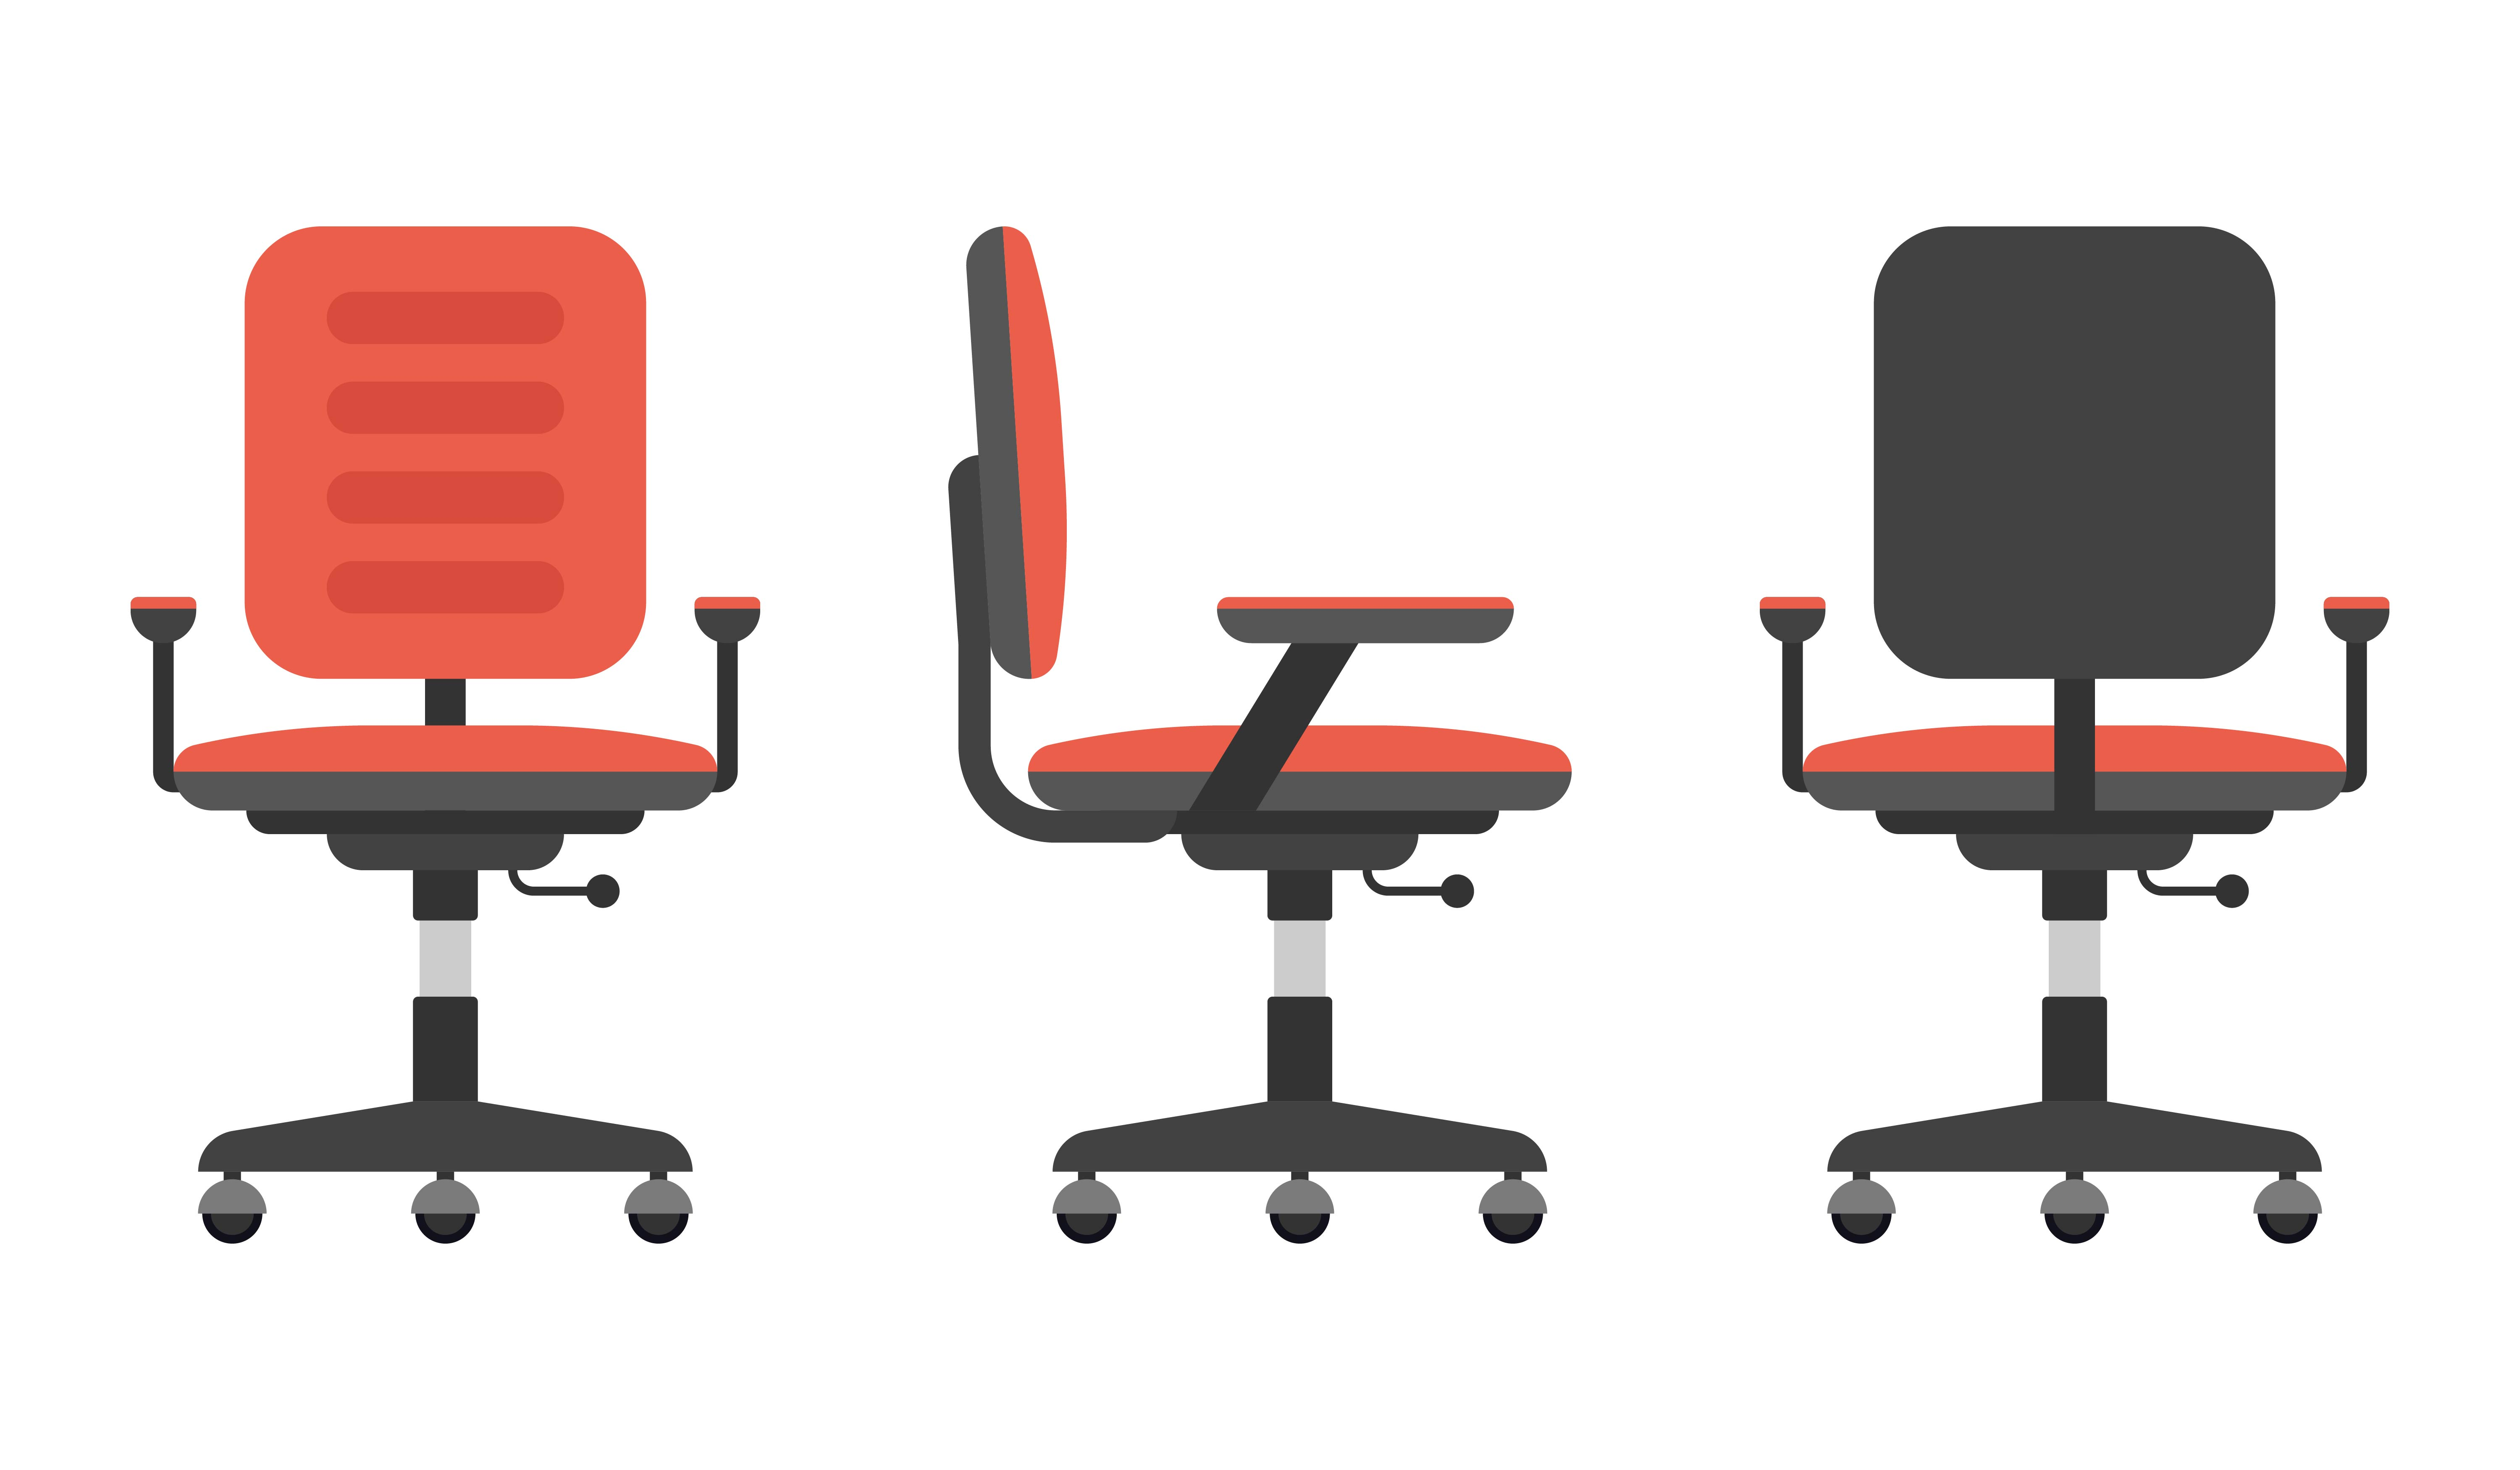 Desk Chair Set Isolated On White Download Free Vectors Clipart Graphics Vector Art